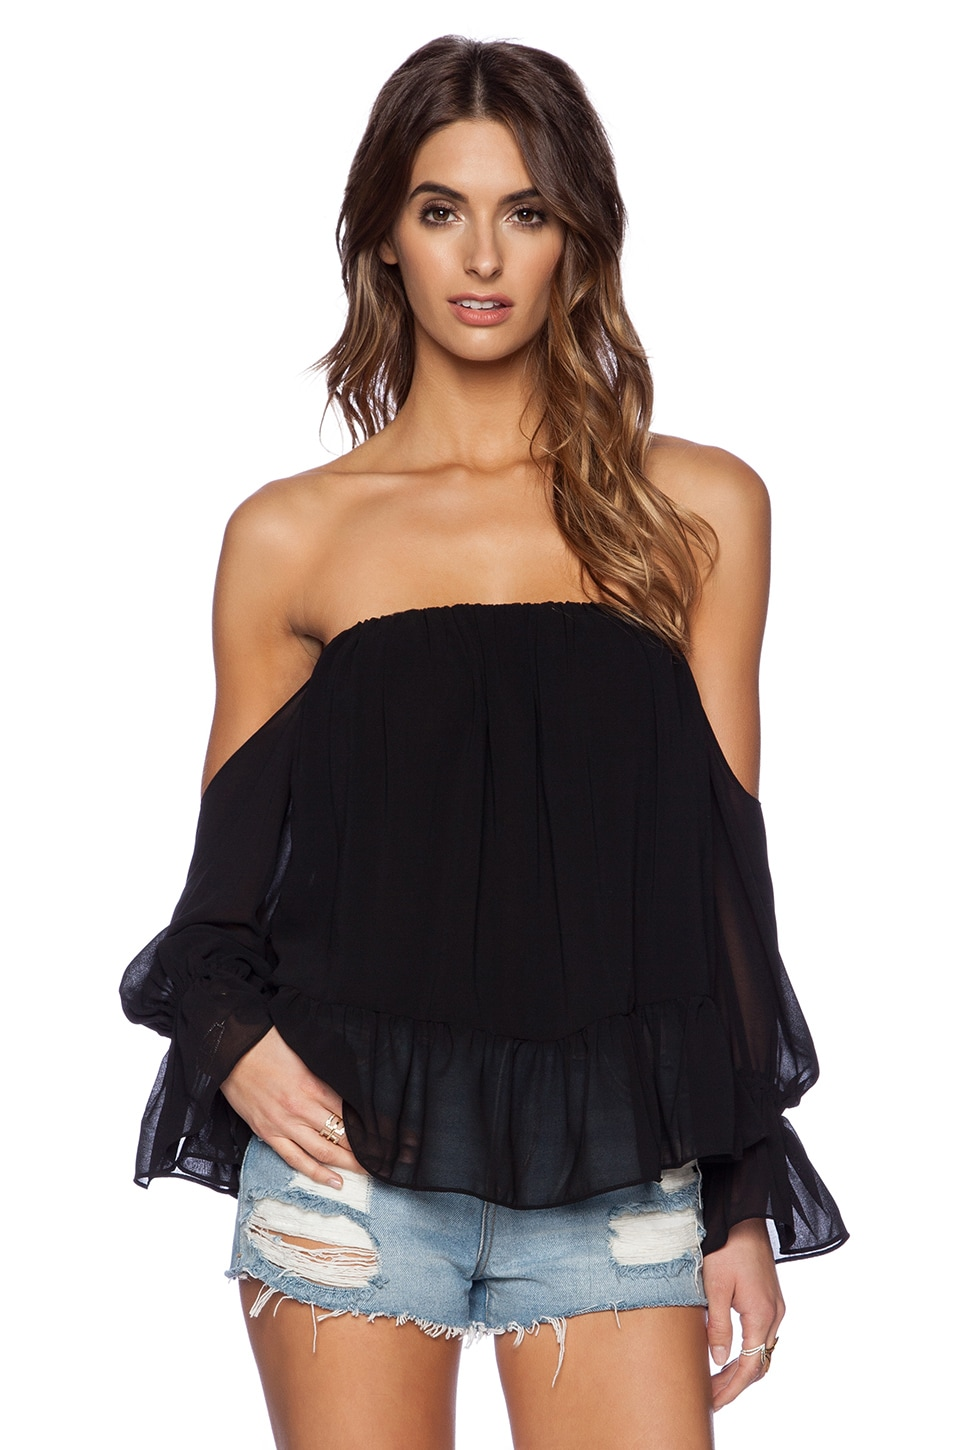 T-Bags LosAngeles Long Sleeve Off the Shoulder Top in Black